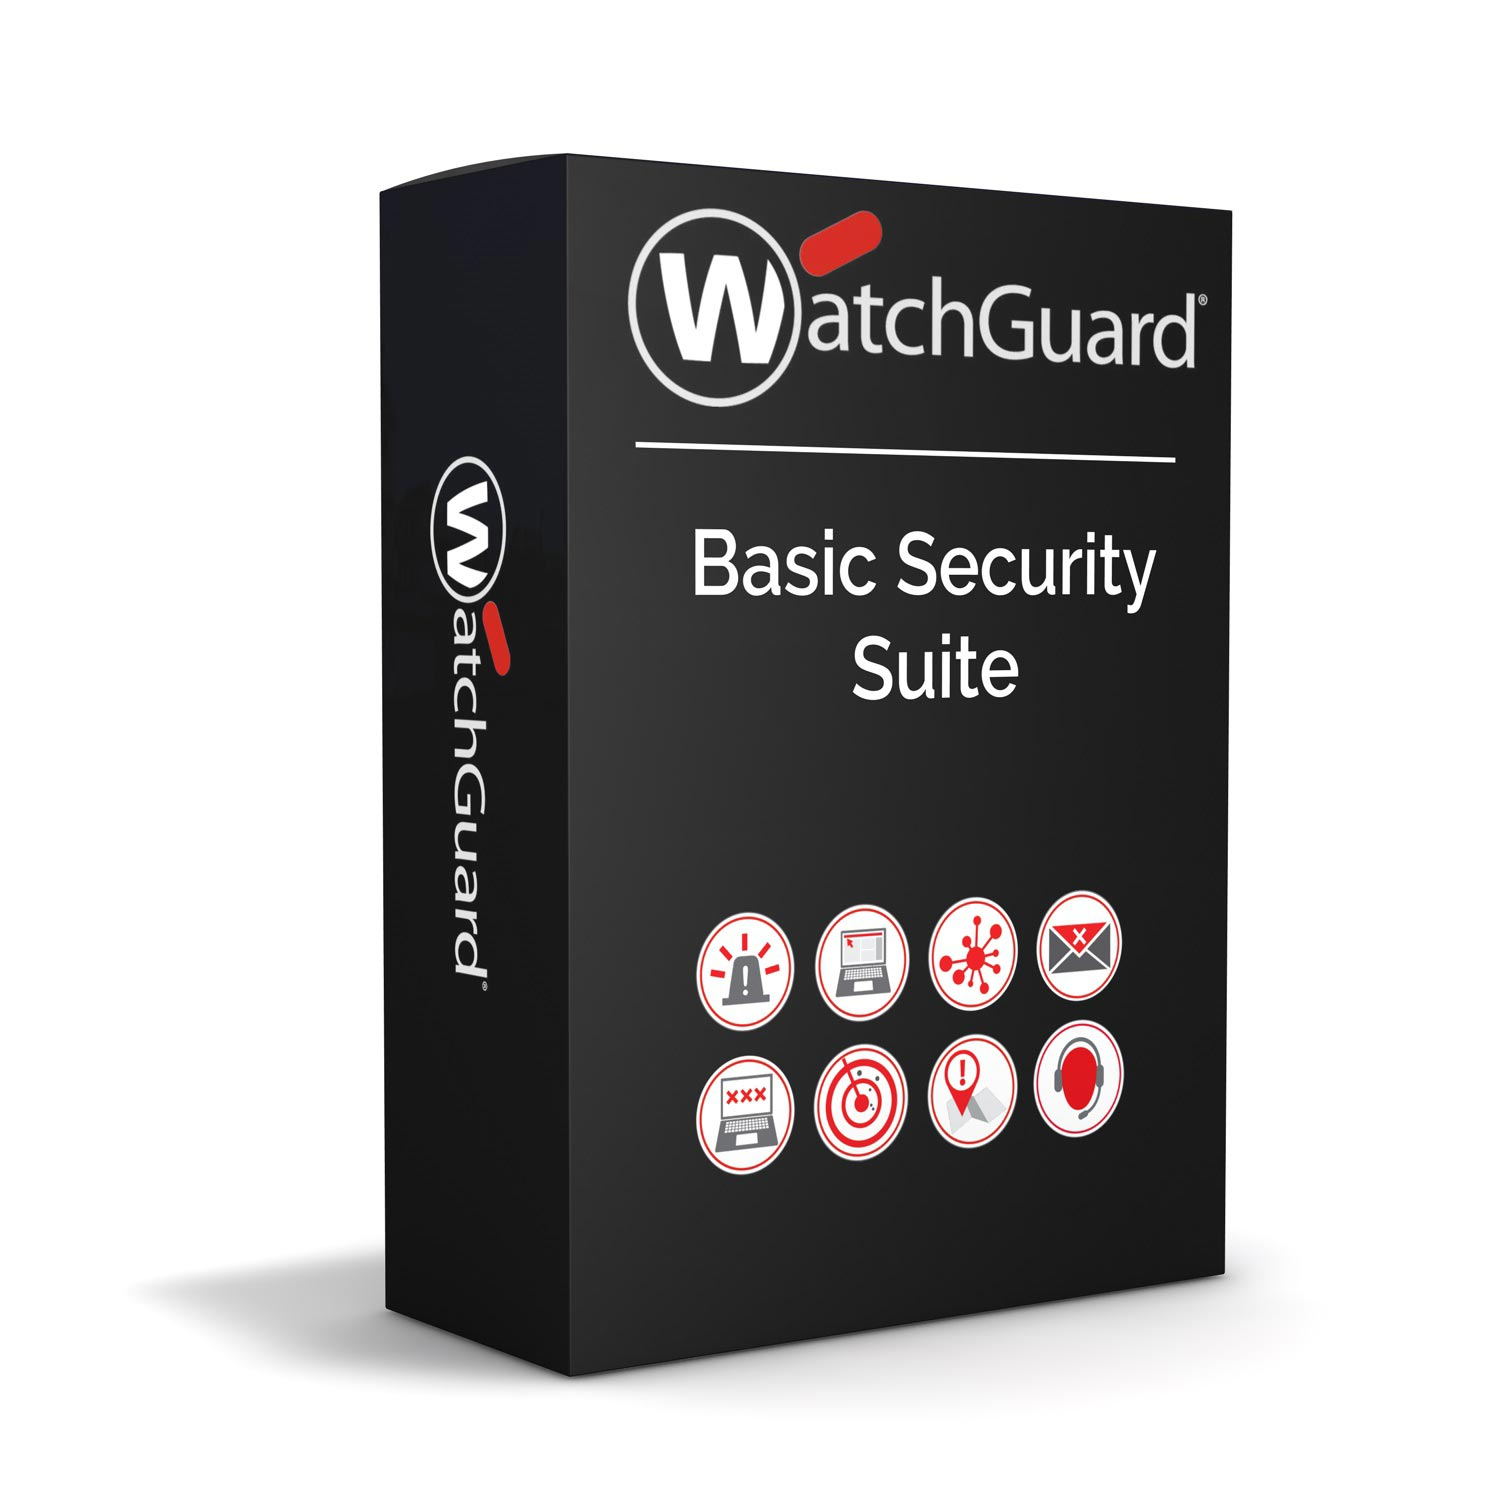 WatchGuard Basic Security Suite Renewal/Upgrade 1-yr for Firebox M4600